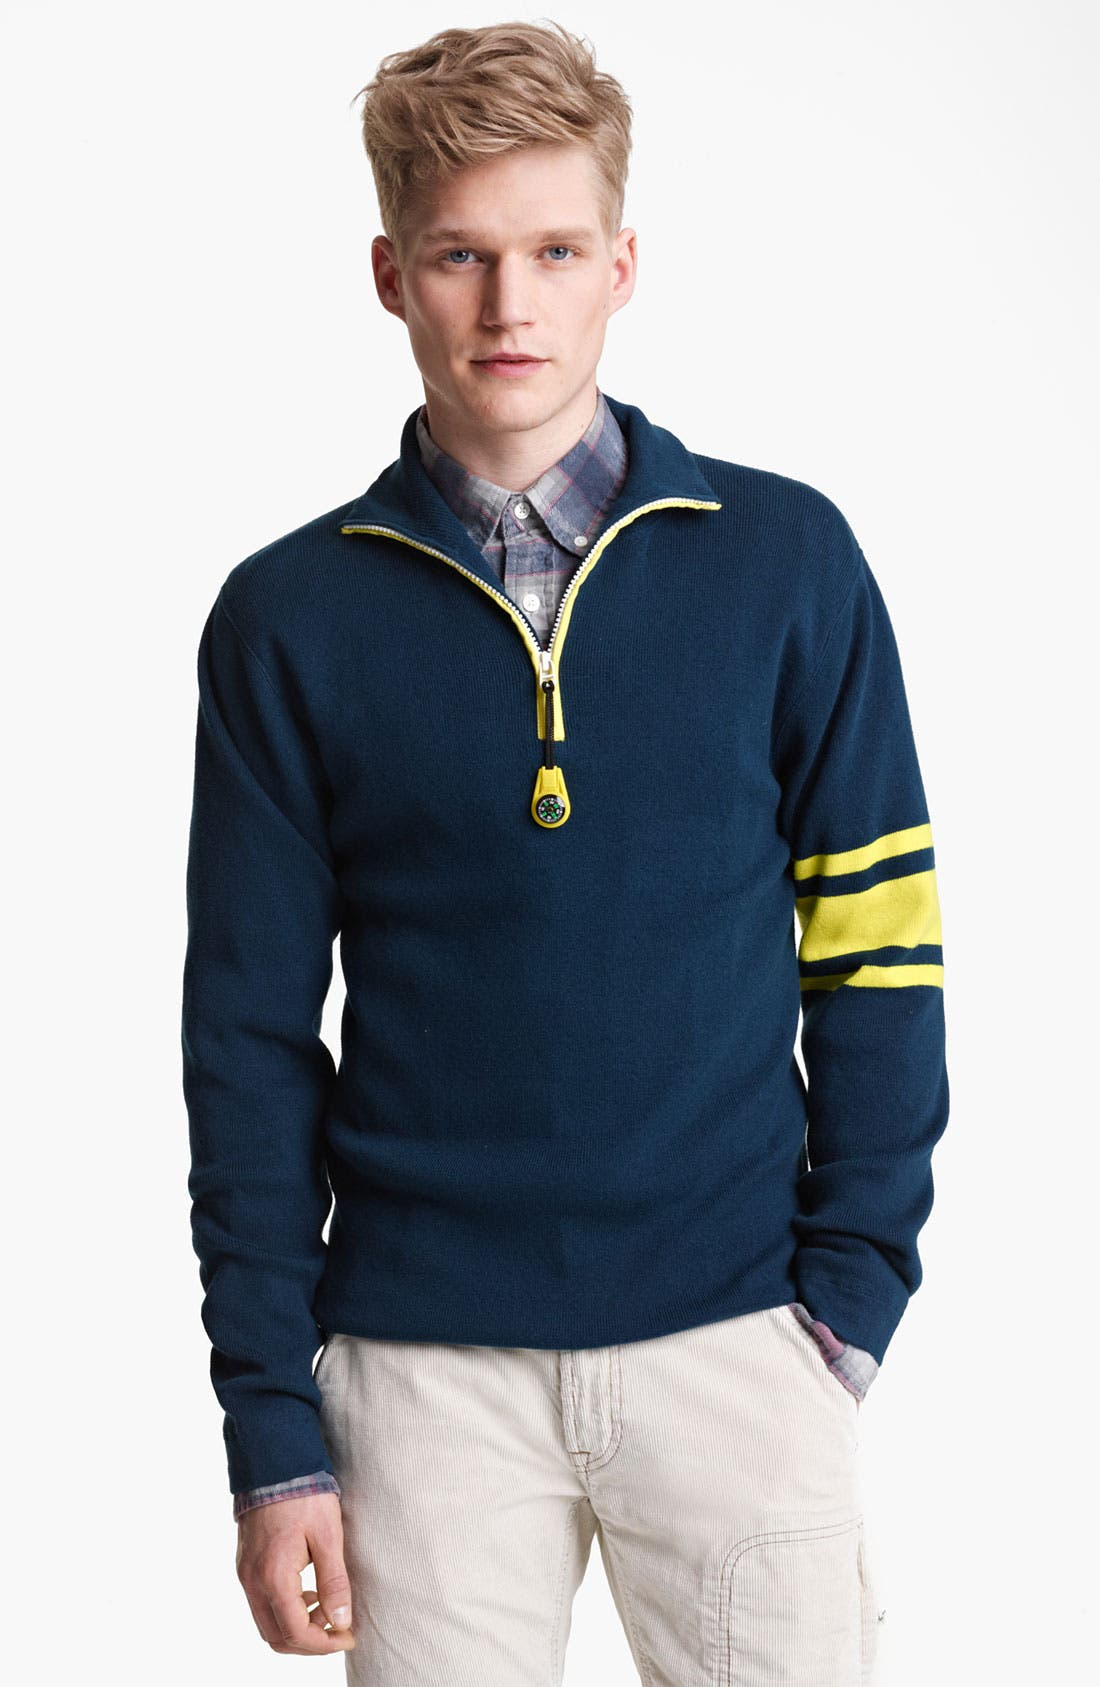 Alternate Image 1 Selected - Gant by Michael Bastian Quarter Zip Knit Pullover